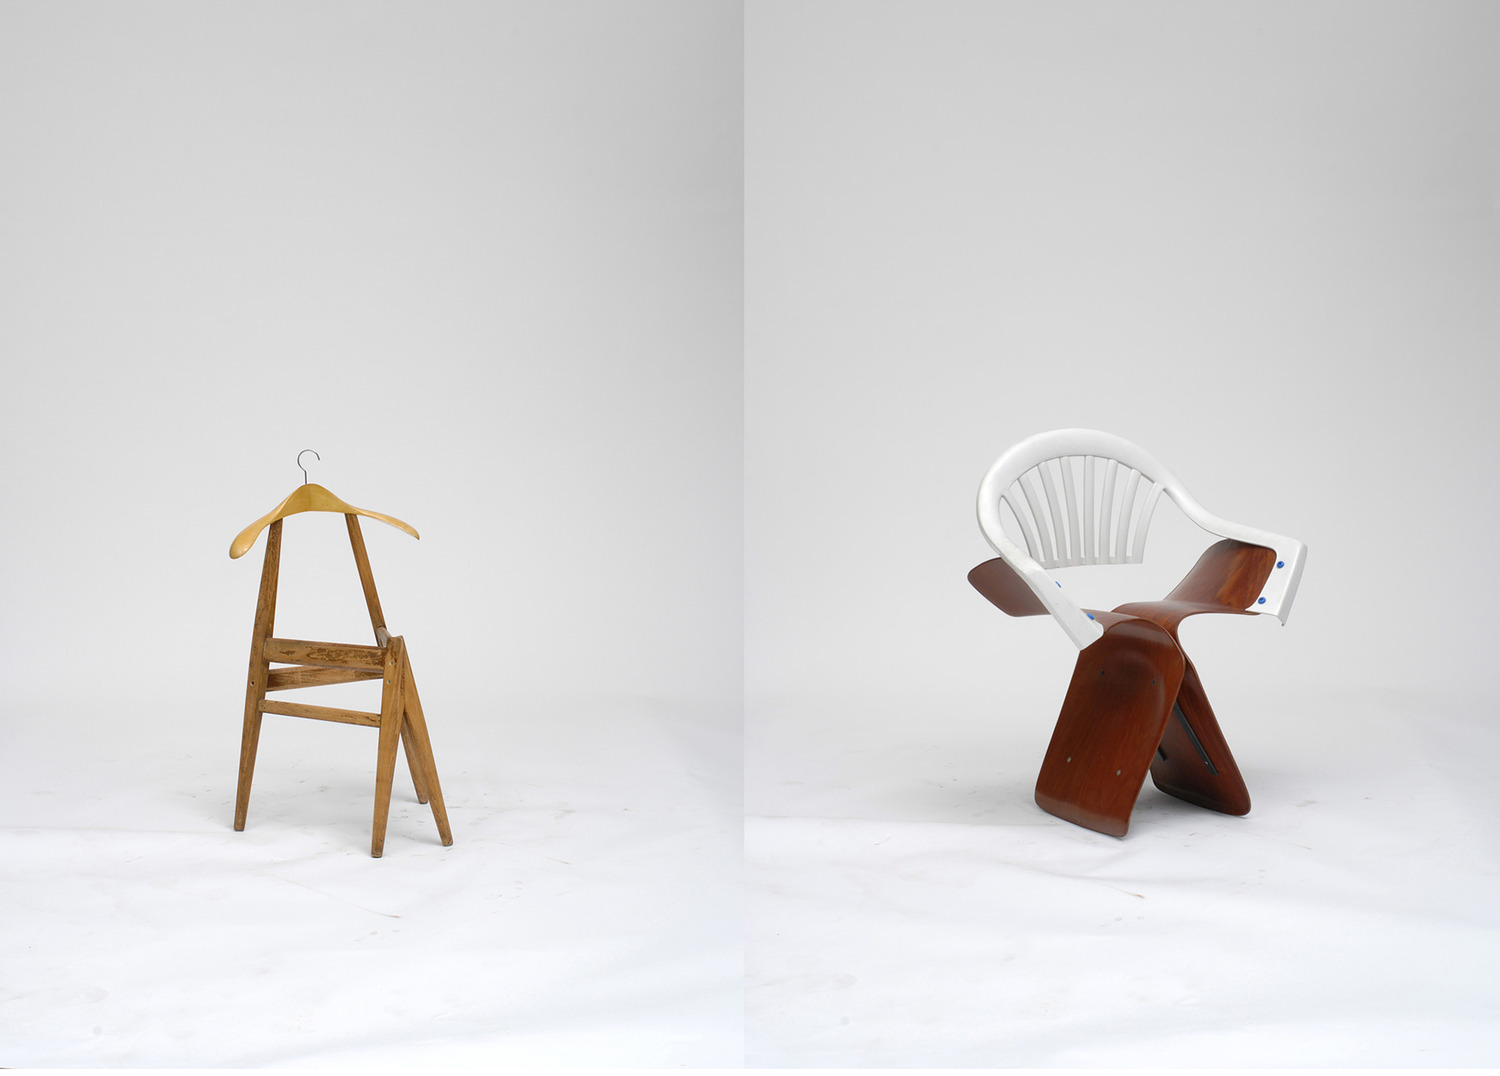 Martino Gamper,, Hanger, 22.09.2006 (left), Wood, 78 x 46 x 40 cm, and Sonnet Butterfly, 16.08.2006 (right), Mixed media, 80 x 68 x 43 cm